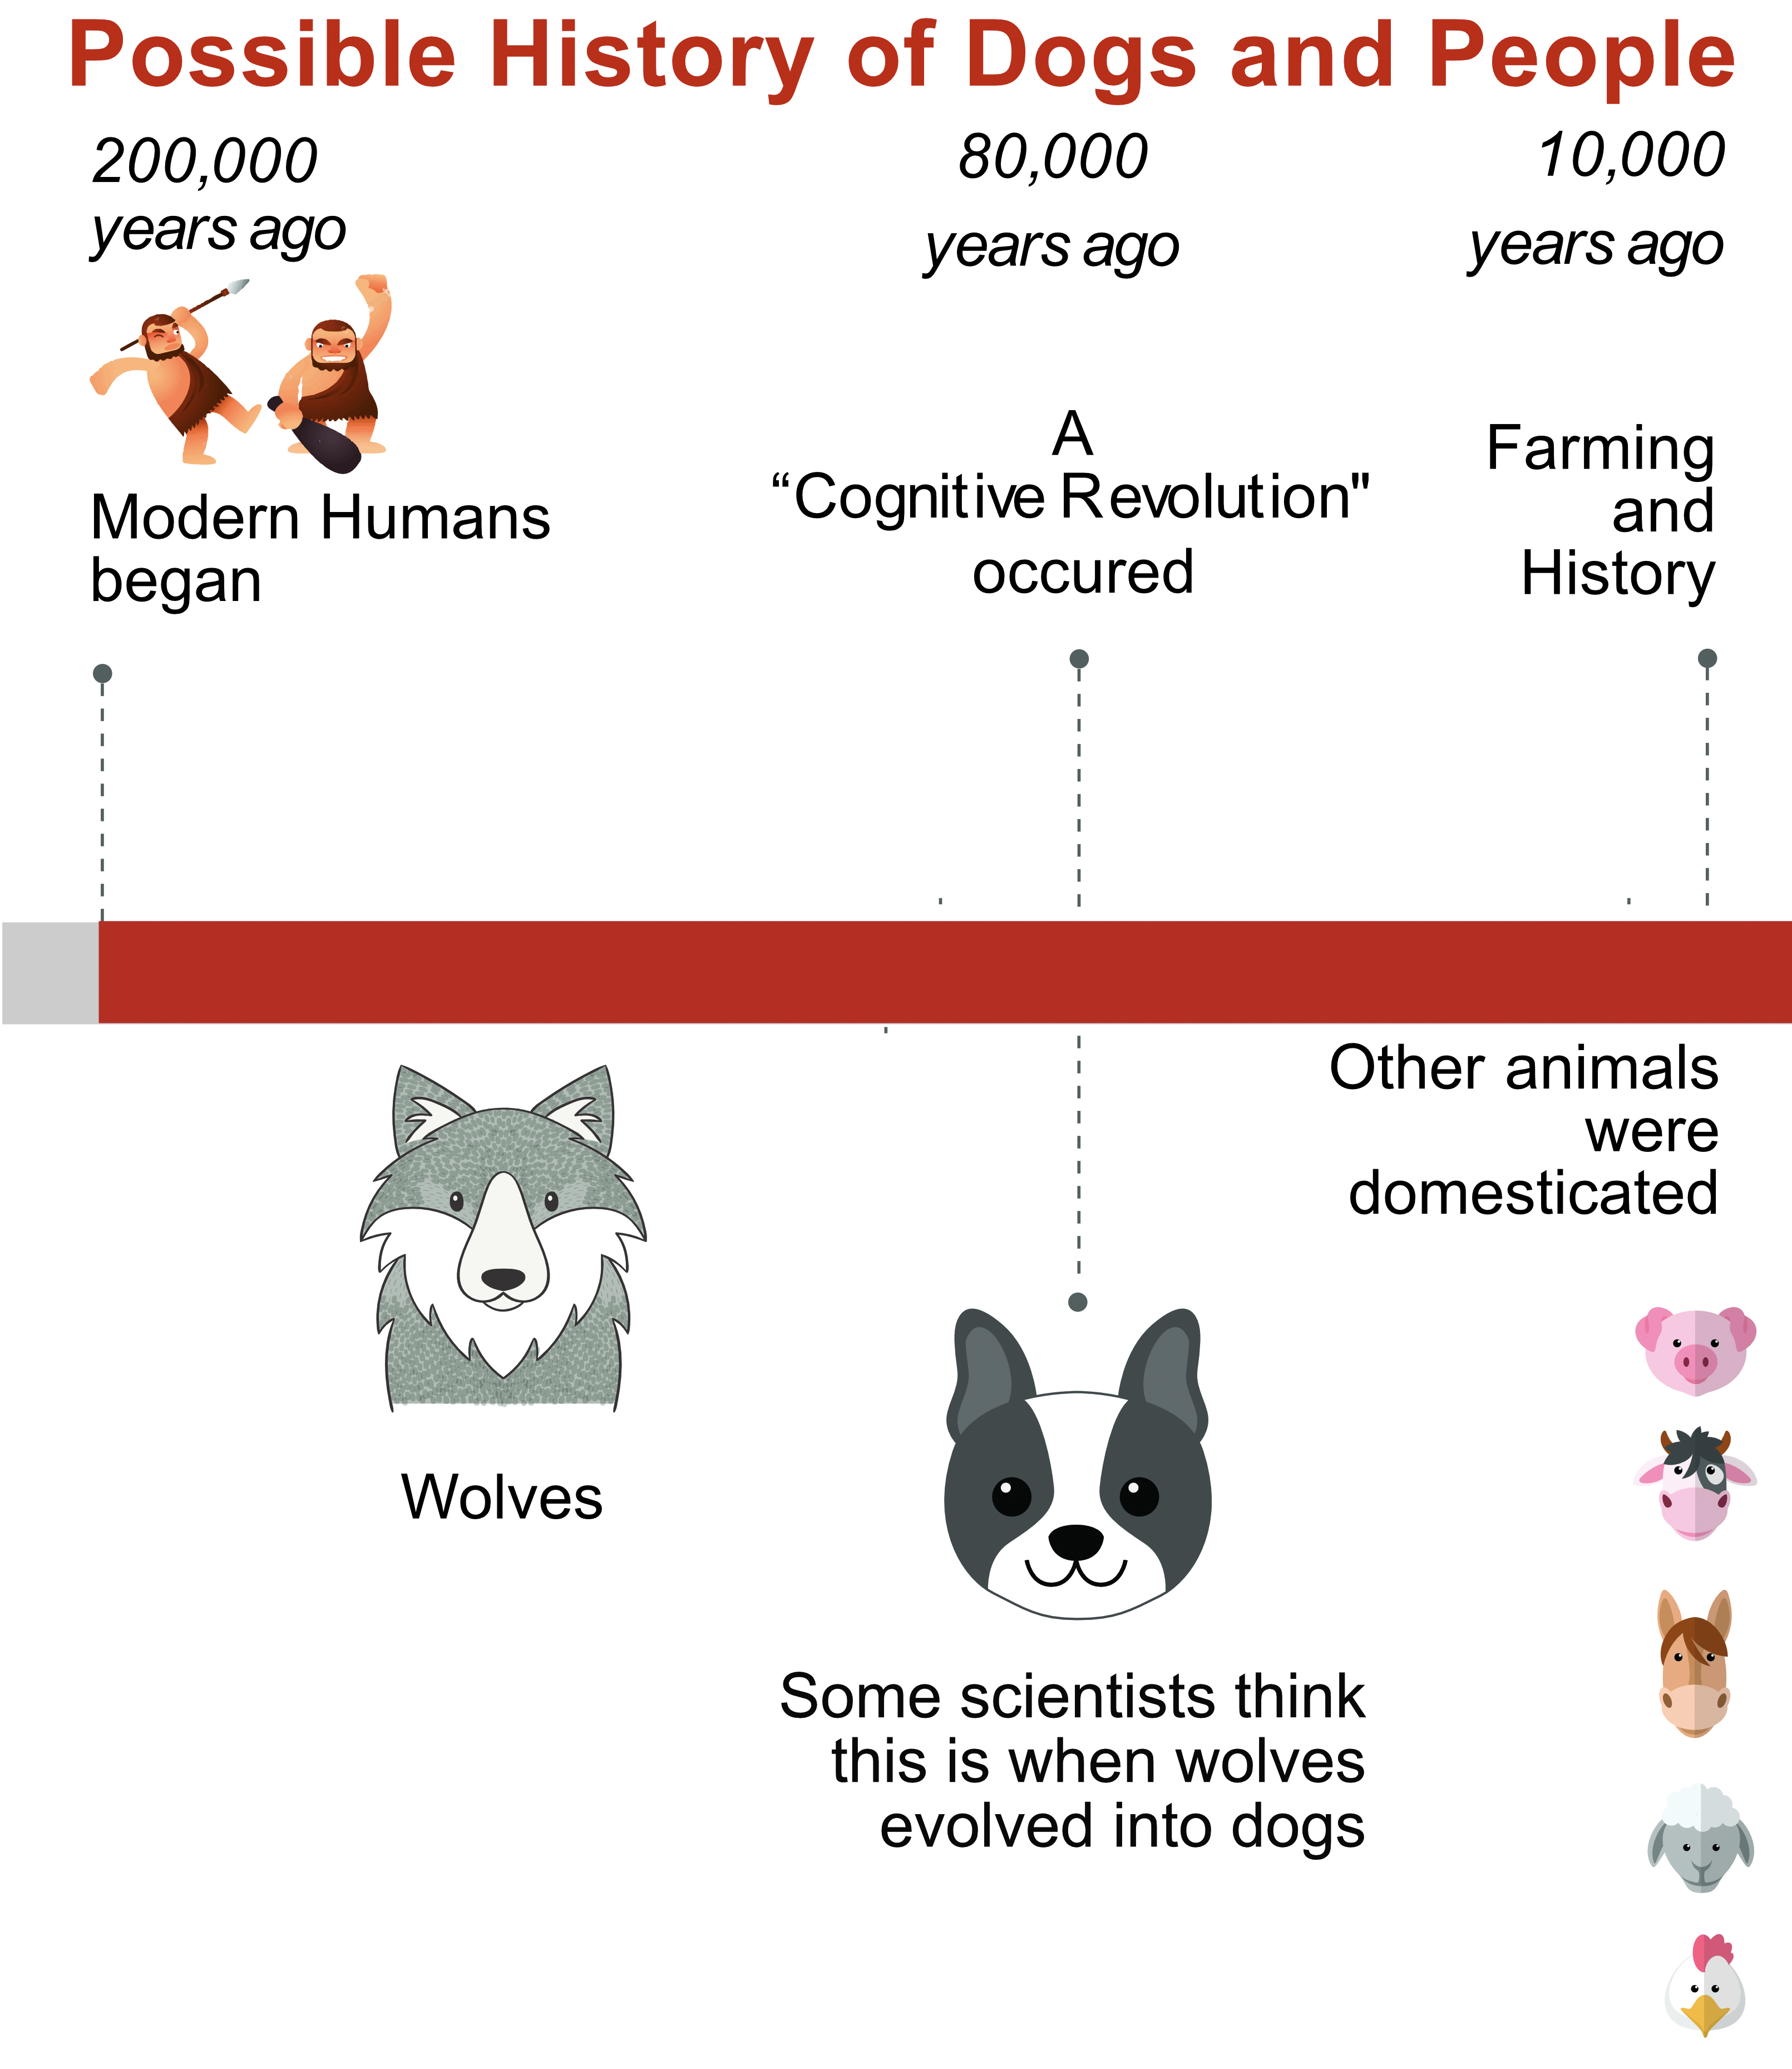 Possible History of Dogs and People